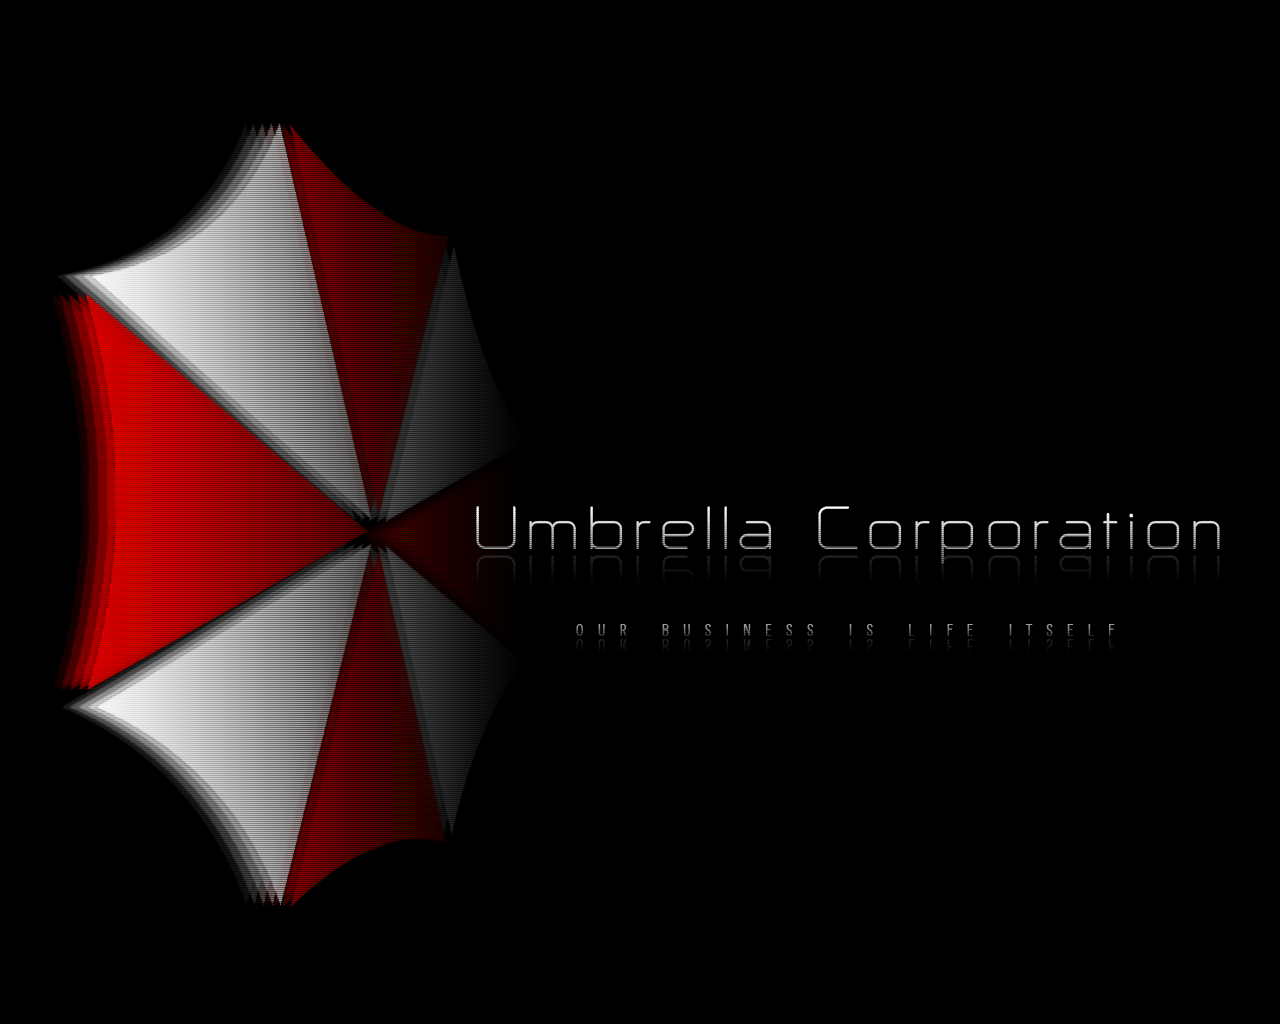 Umbrella Corp Wallpaper 01 by Disease-of-Machinery